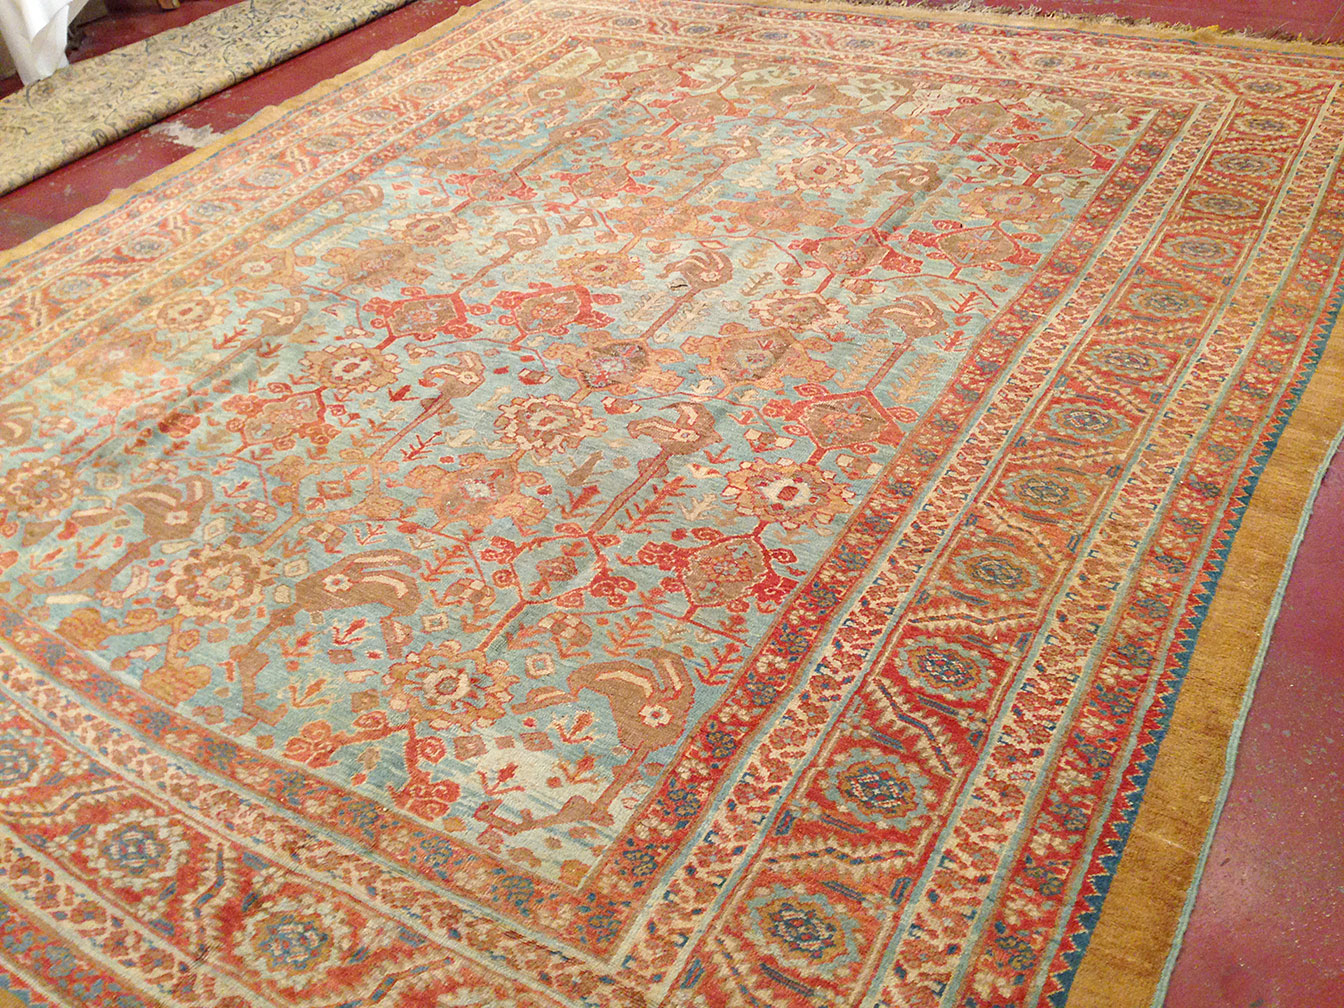 Antique bakshaish Carpet - # 50267